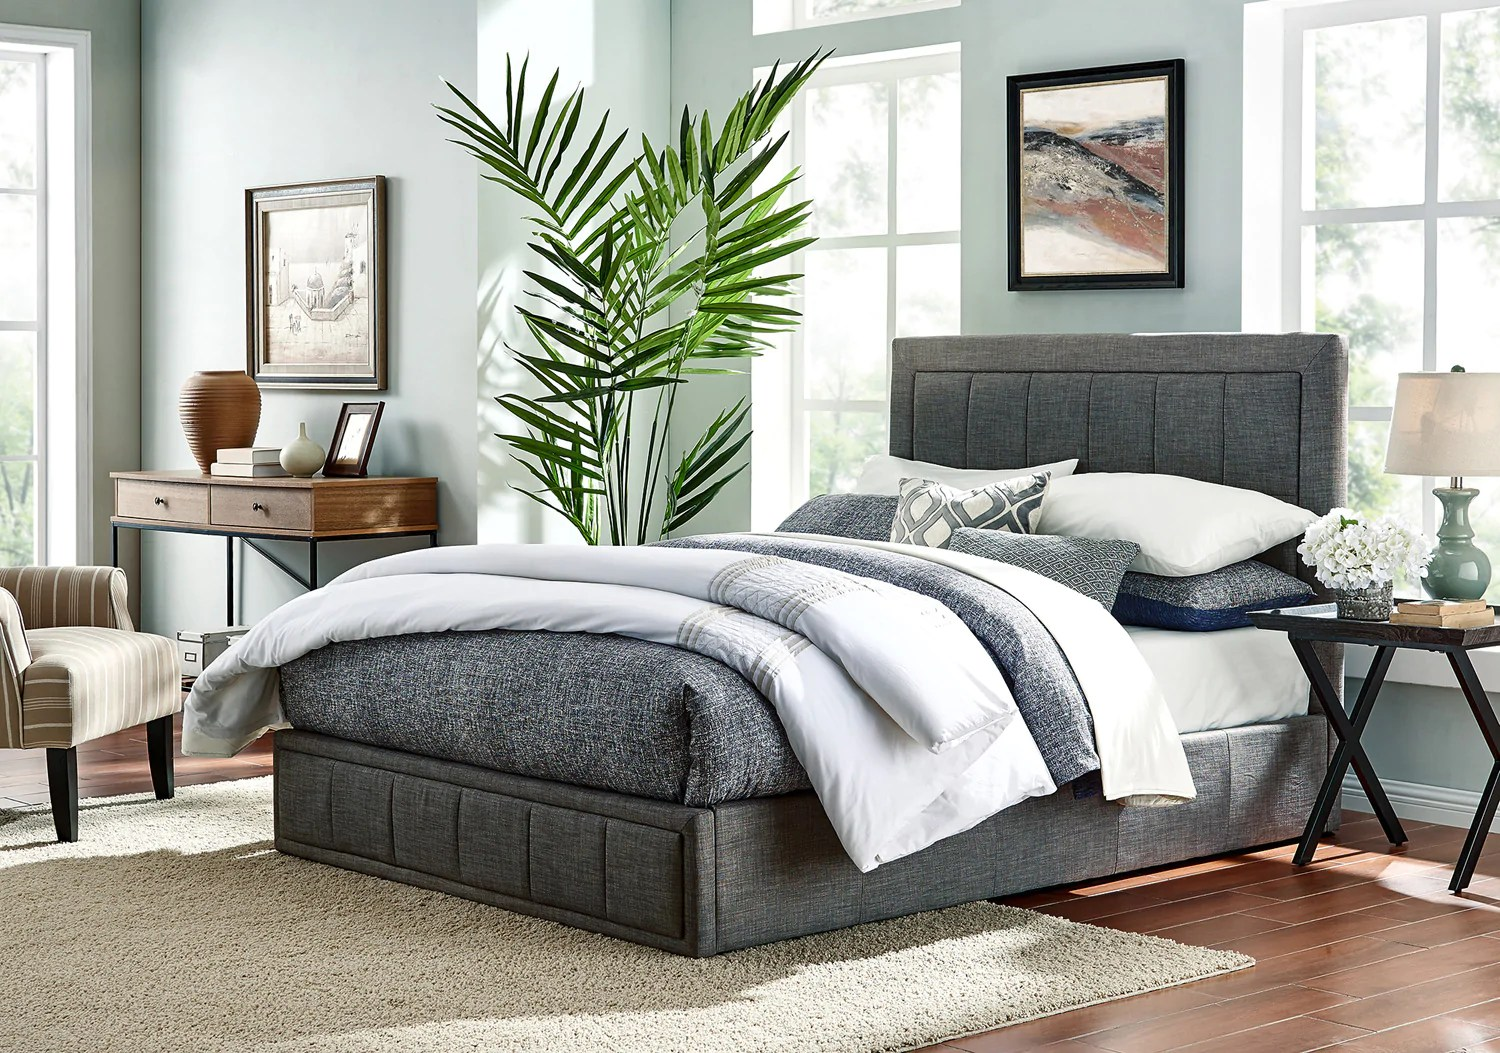 Bed Frame Fabric Bedroom Furniture Wooden Base Black Grey Double Queen King Ebay